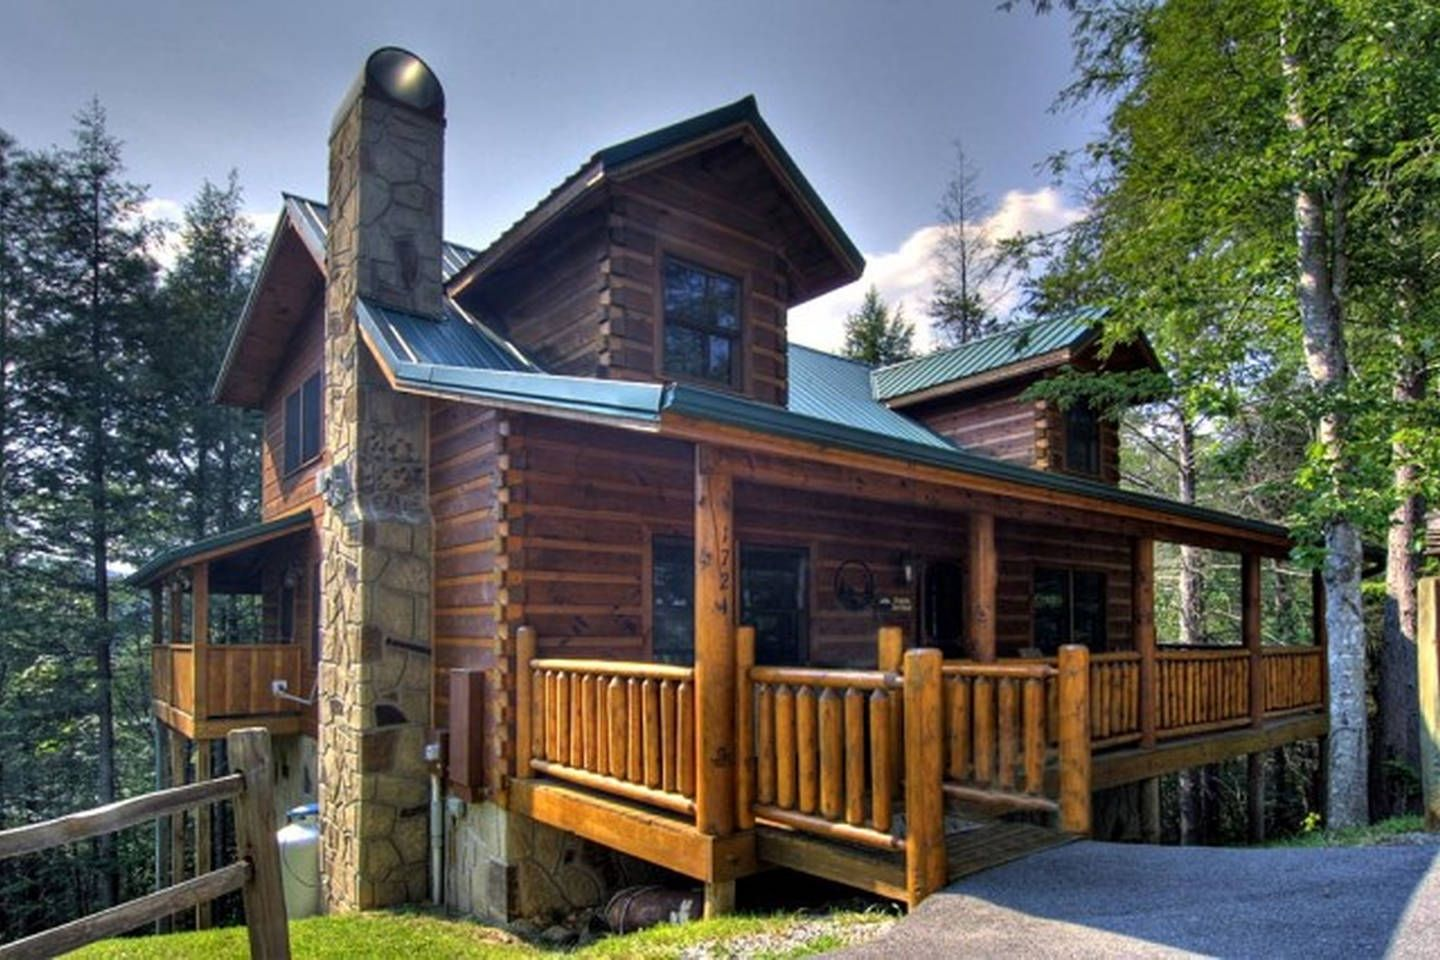 Cabin is sassy lady in the smokies vacation rental in pigeon forge tennessee view more pigeonforgetennesseevacationrentals